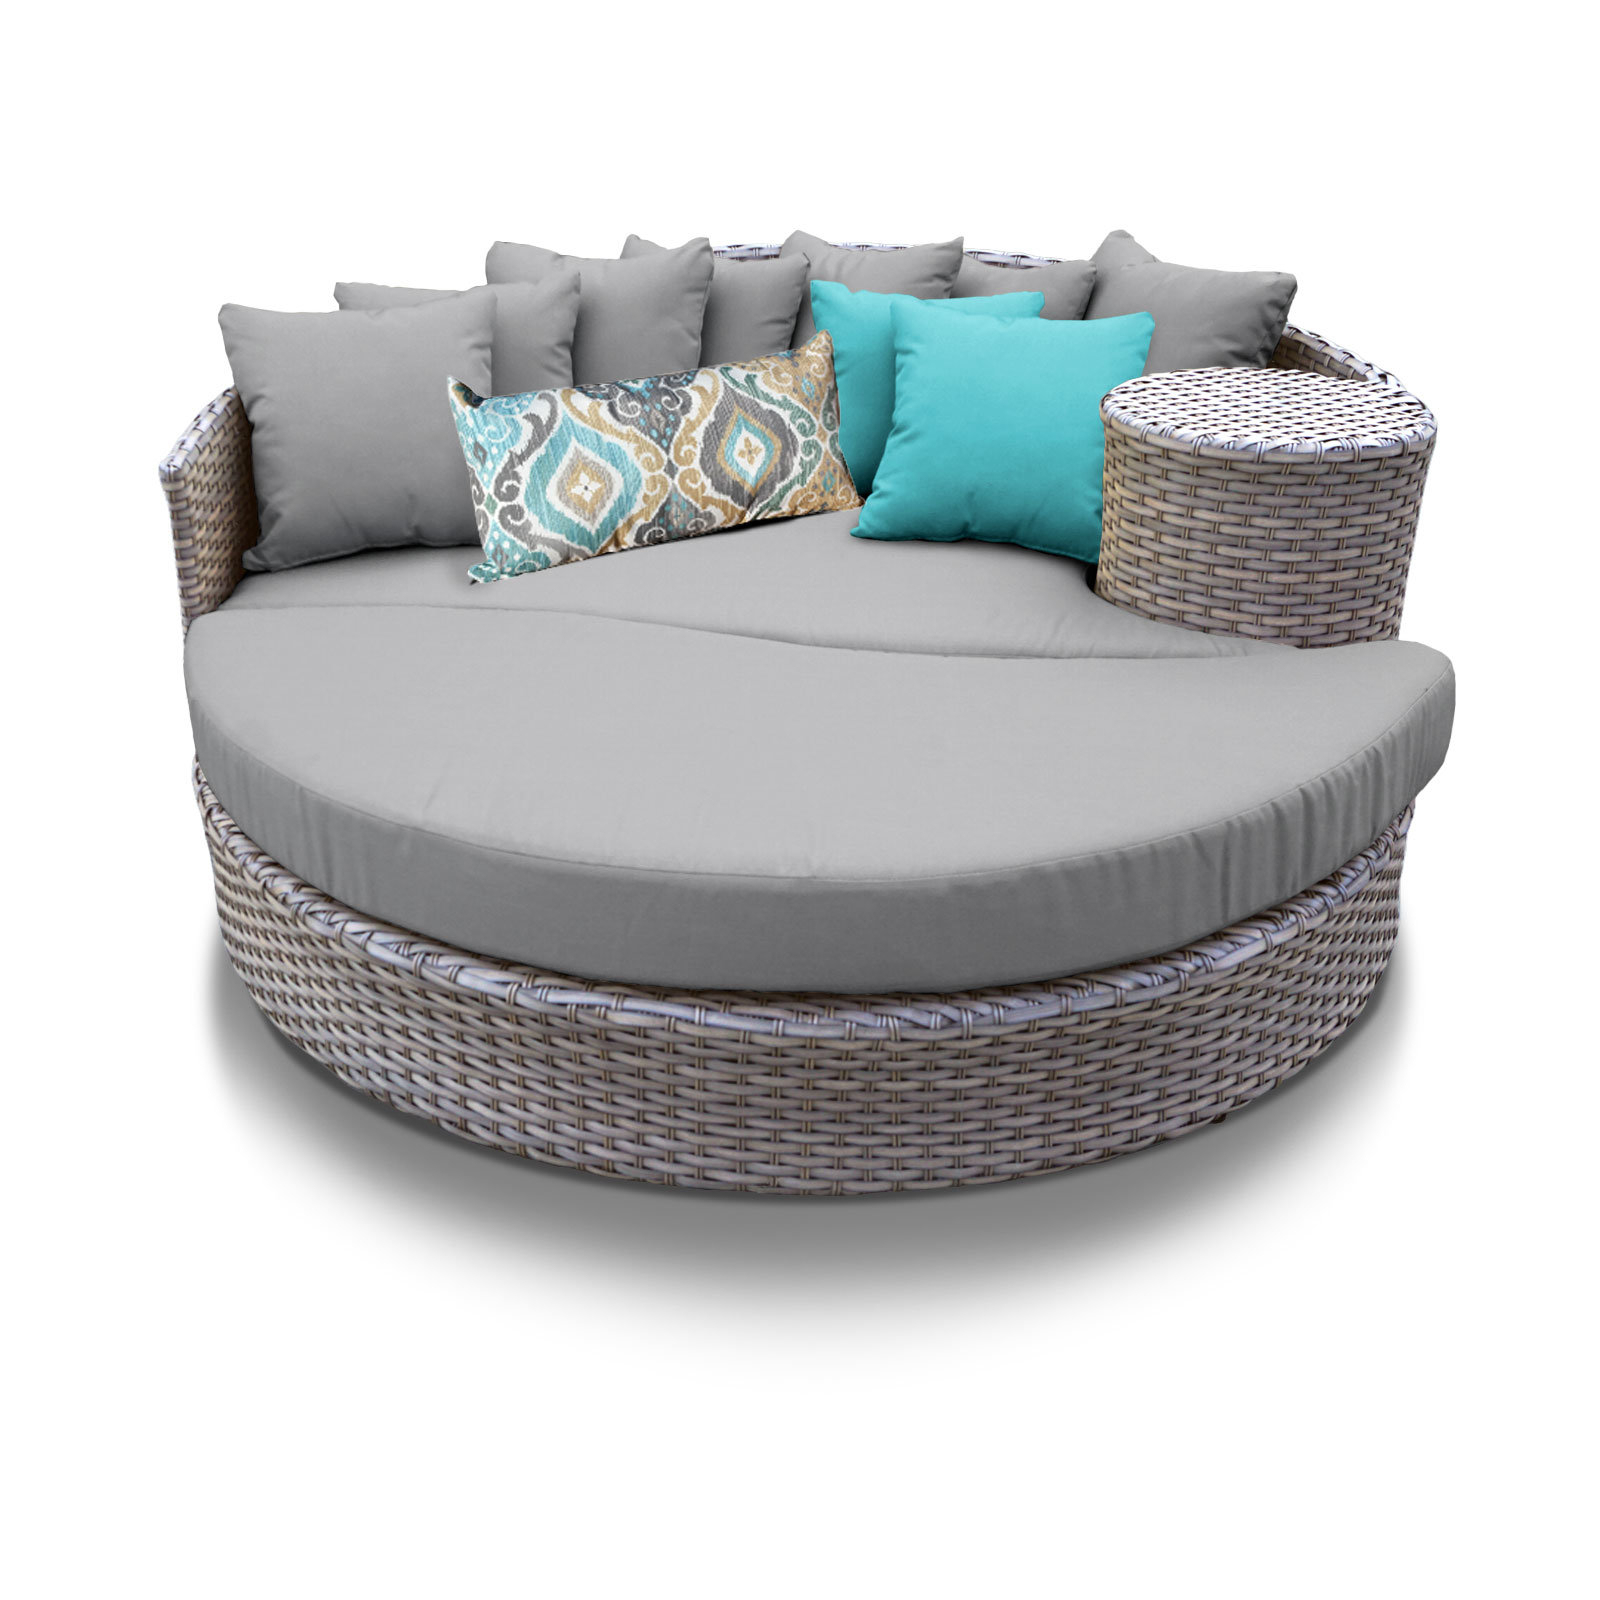 Medrano Patio Daybed With Cushions For Recent Brennon Cube Patio Daybeds With Cushions (View 19 of 25)